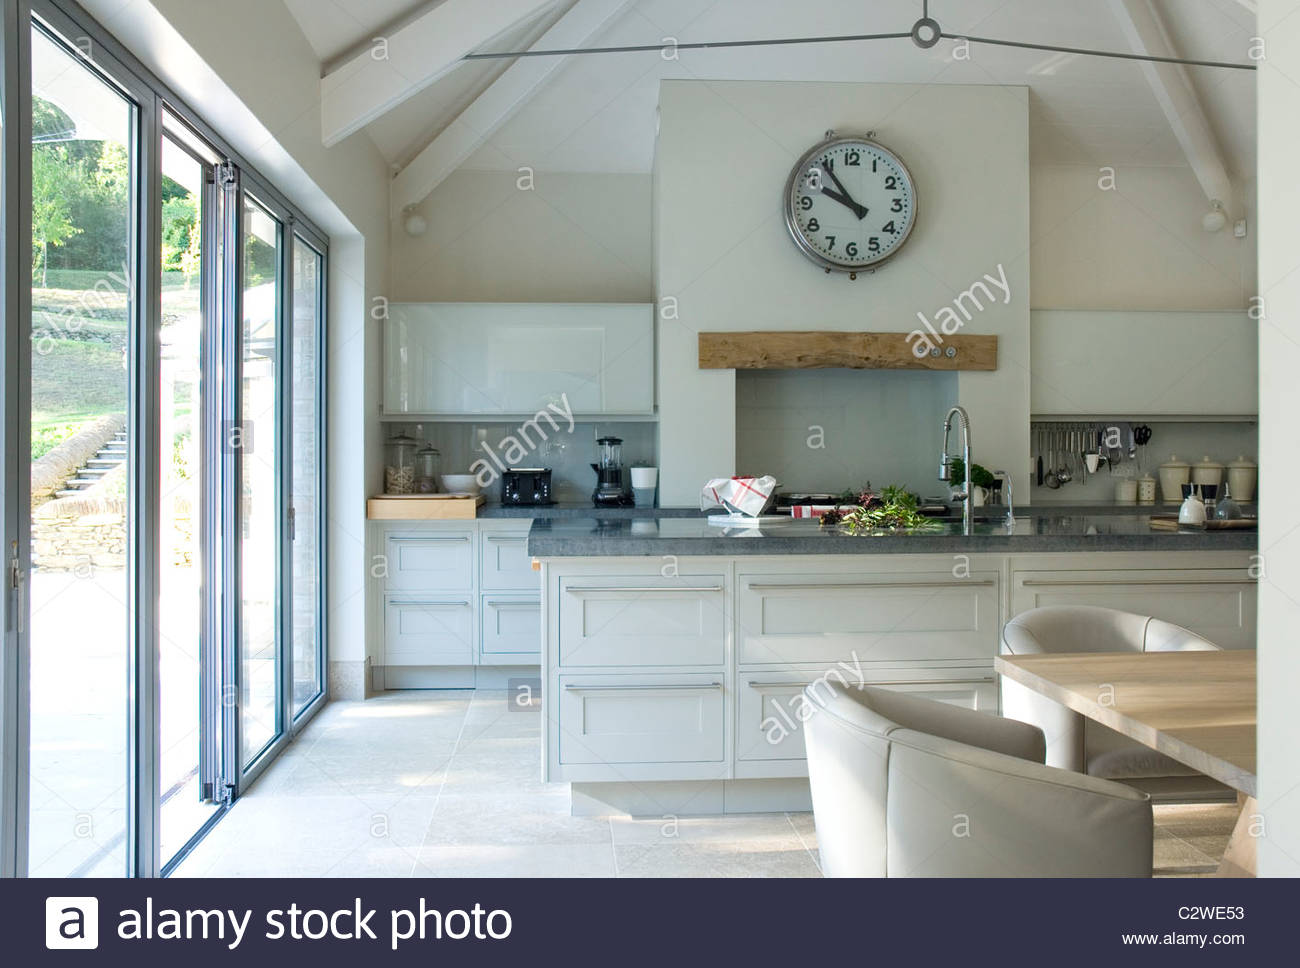 Kitchen With Vaulted Ceiling Stock Photos & Kitchen With Vaulted ...